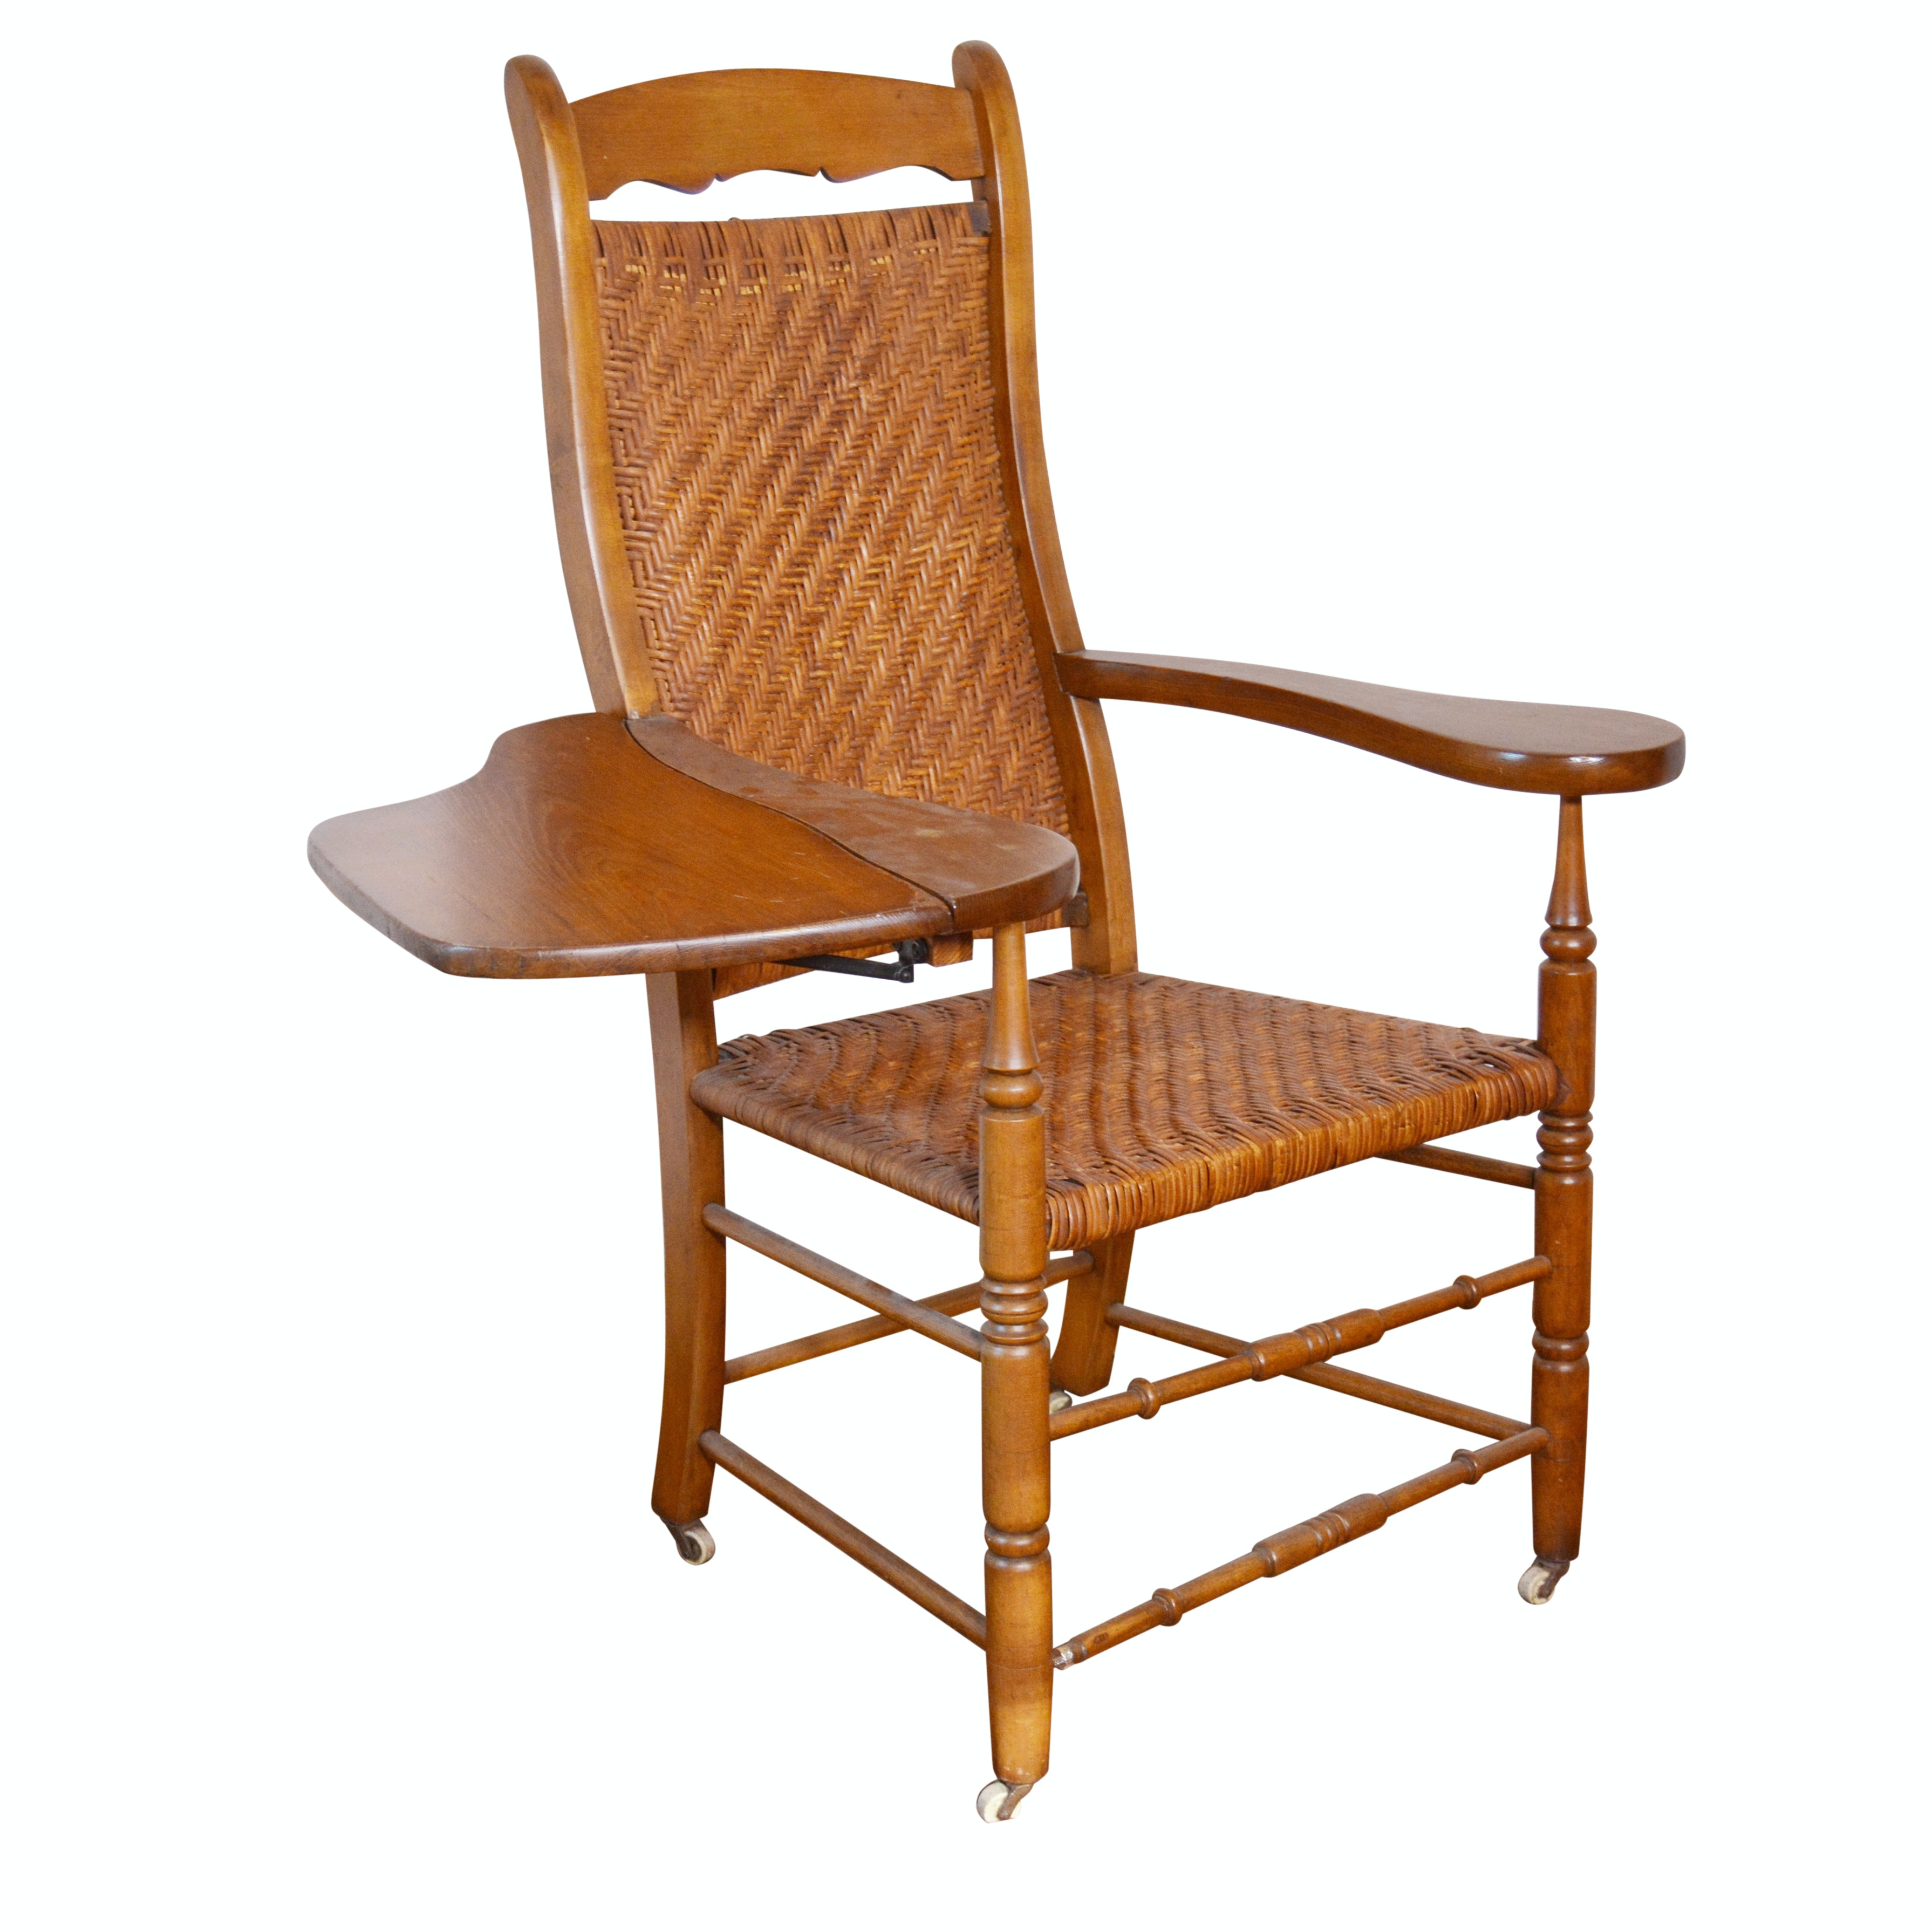 Delaware Chair Company Writing-Arm Chair, Late 19th/Early 20th Century